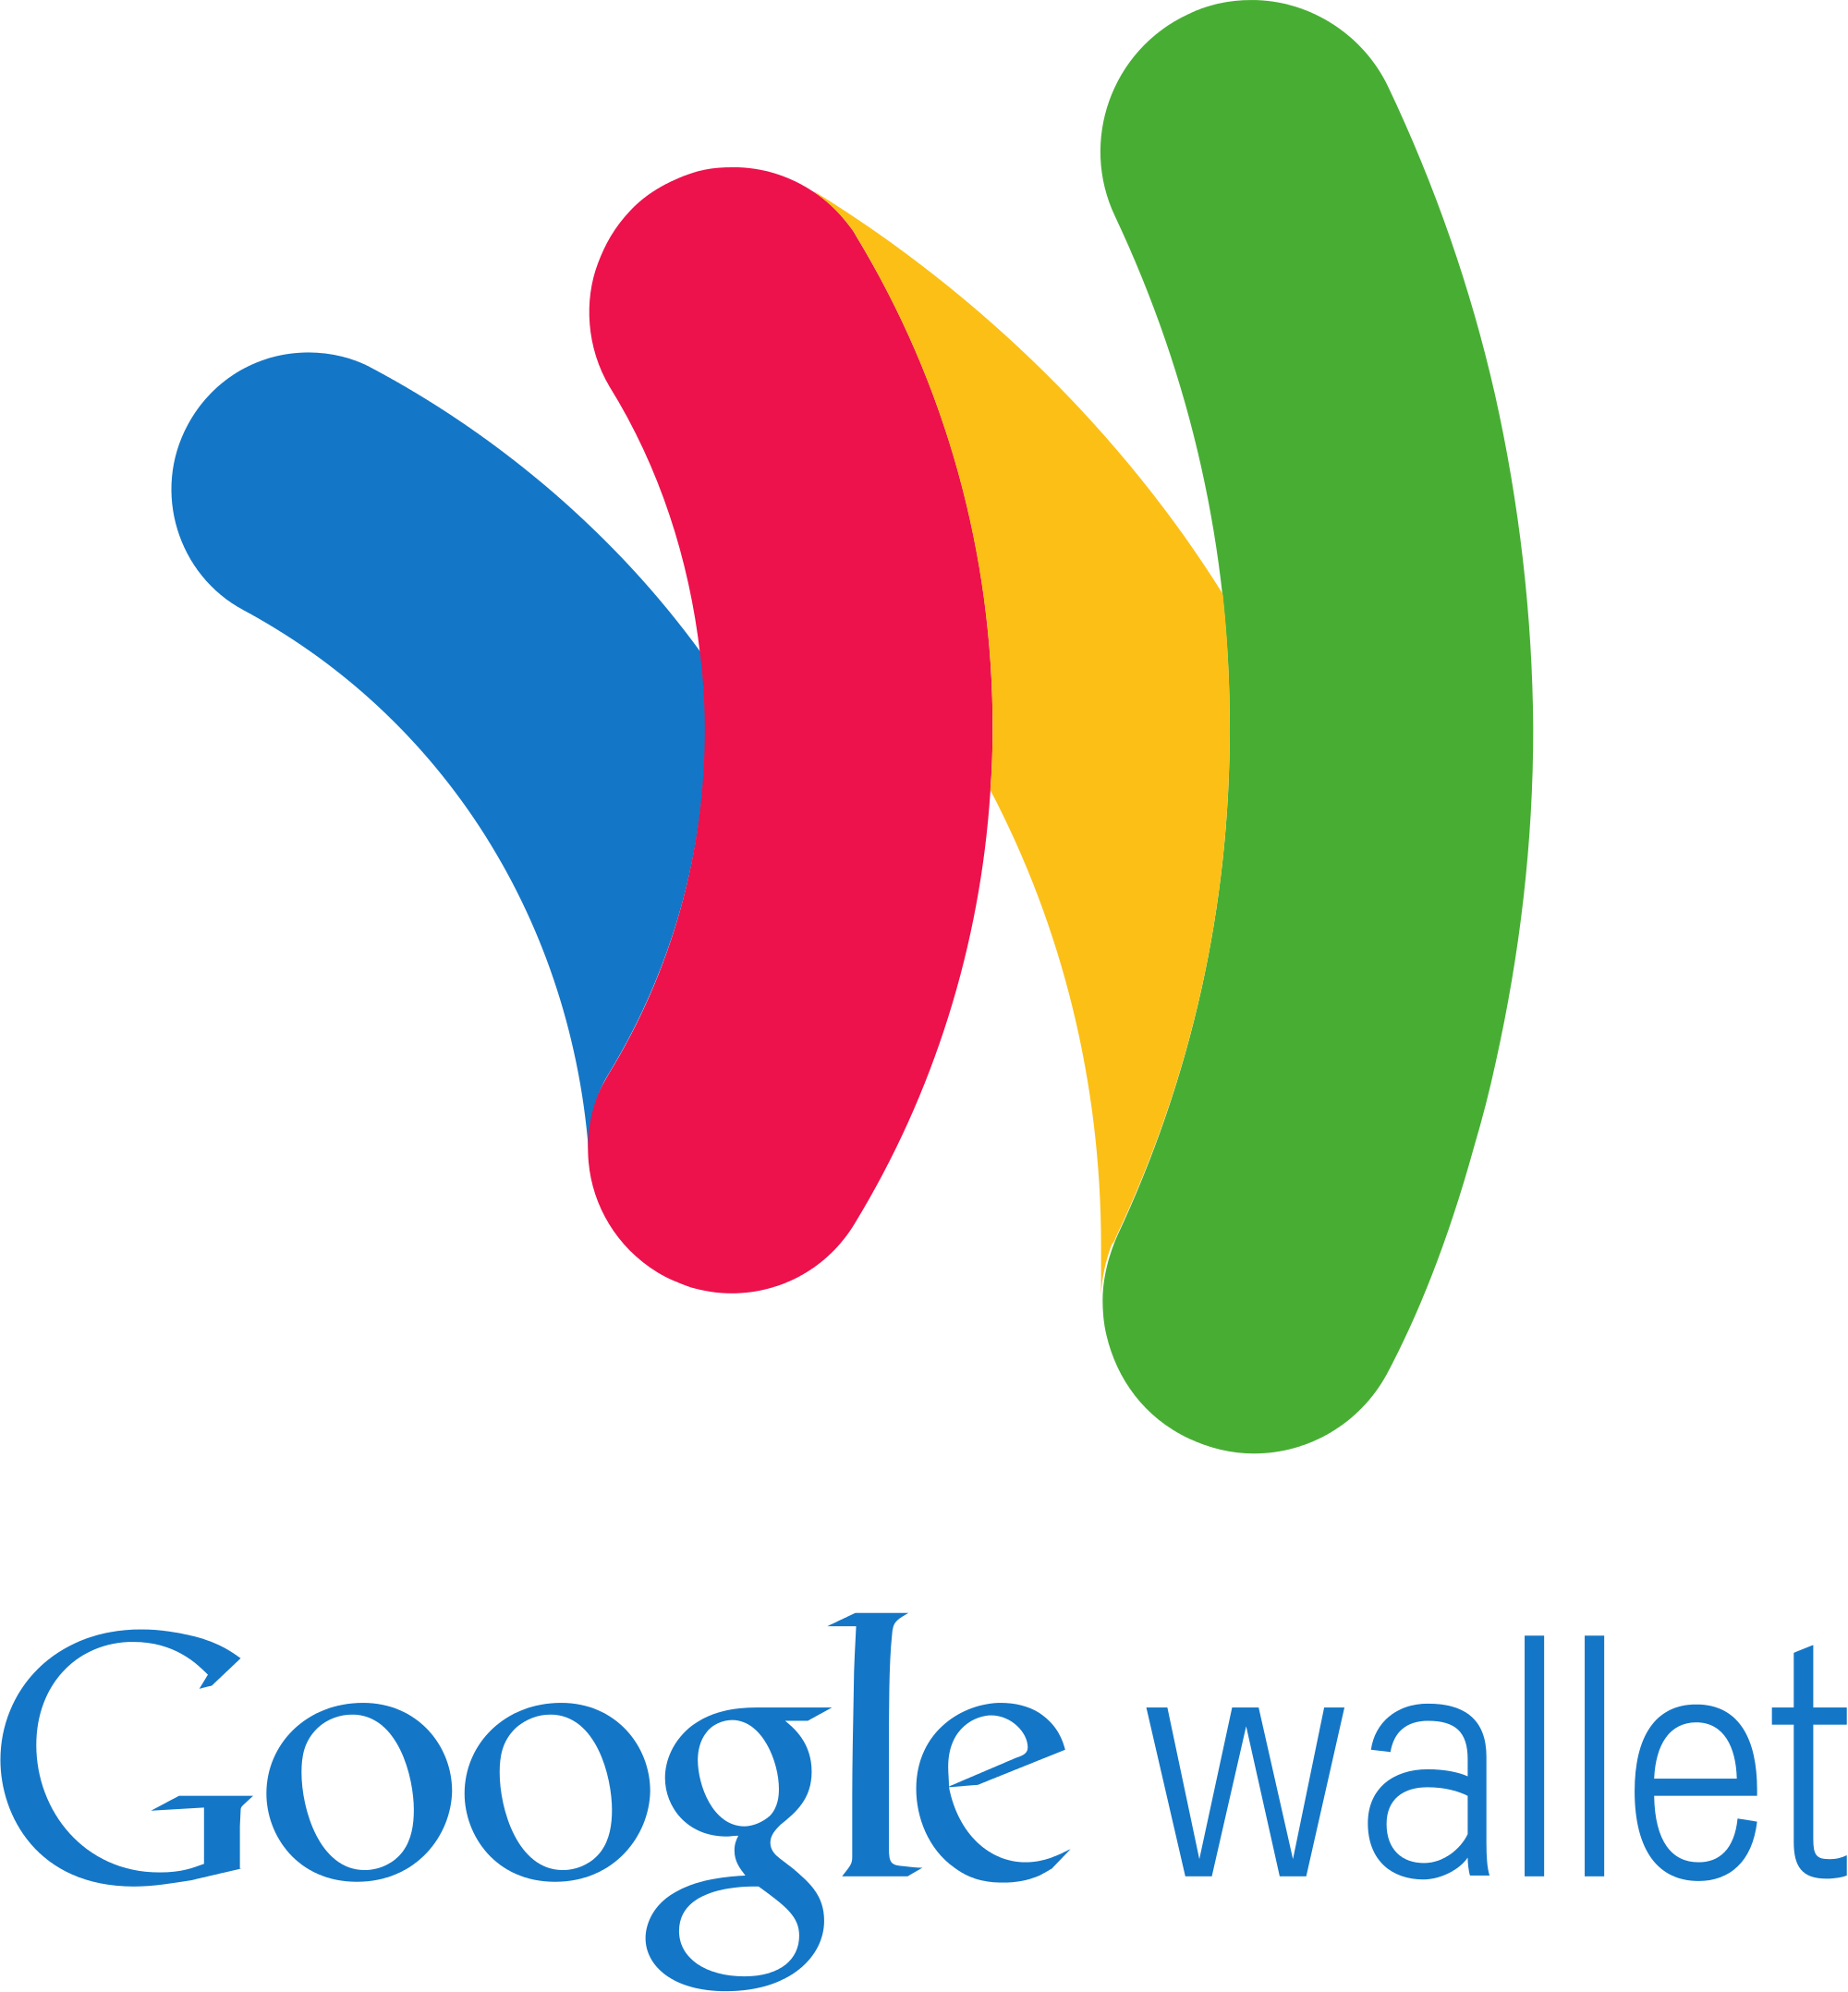 Google wallet logo png. File svg wikimedia commons